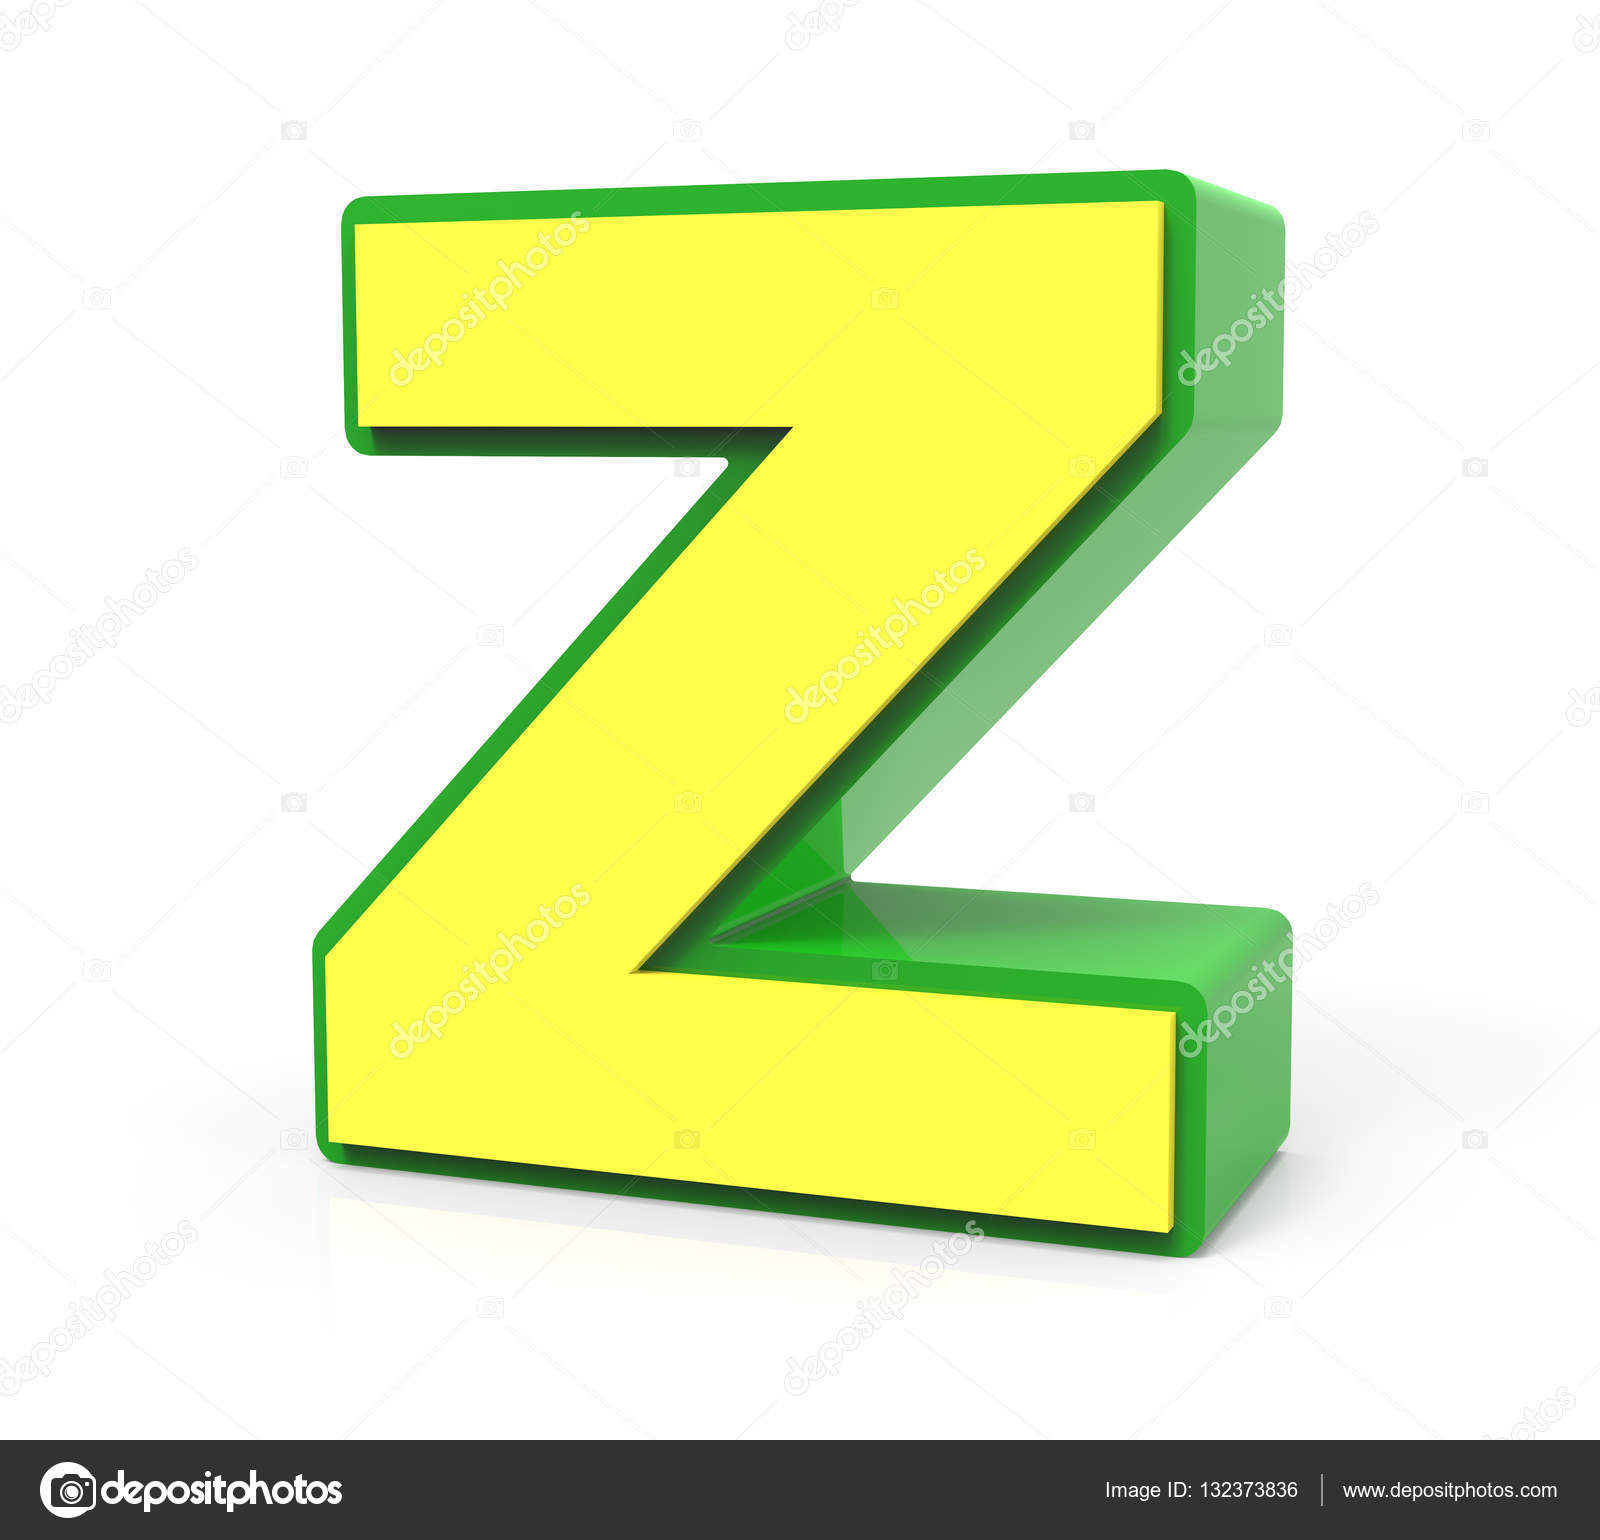 3D Toy Buchstabe Z — Stockfoto © HstrongART #132373836